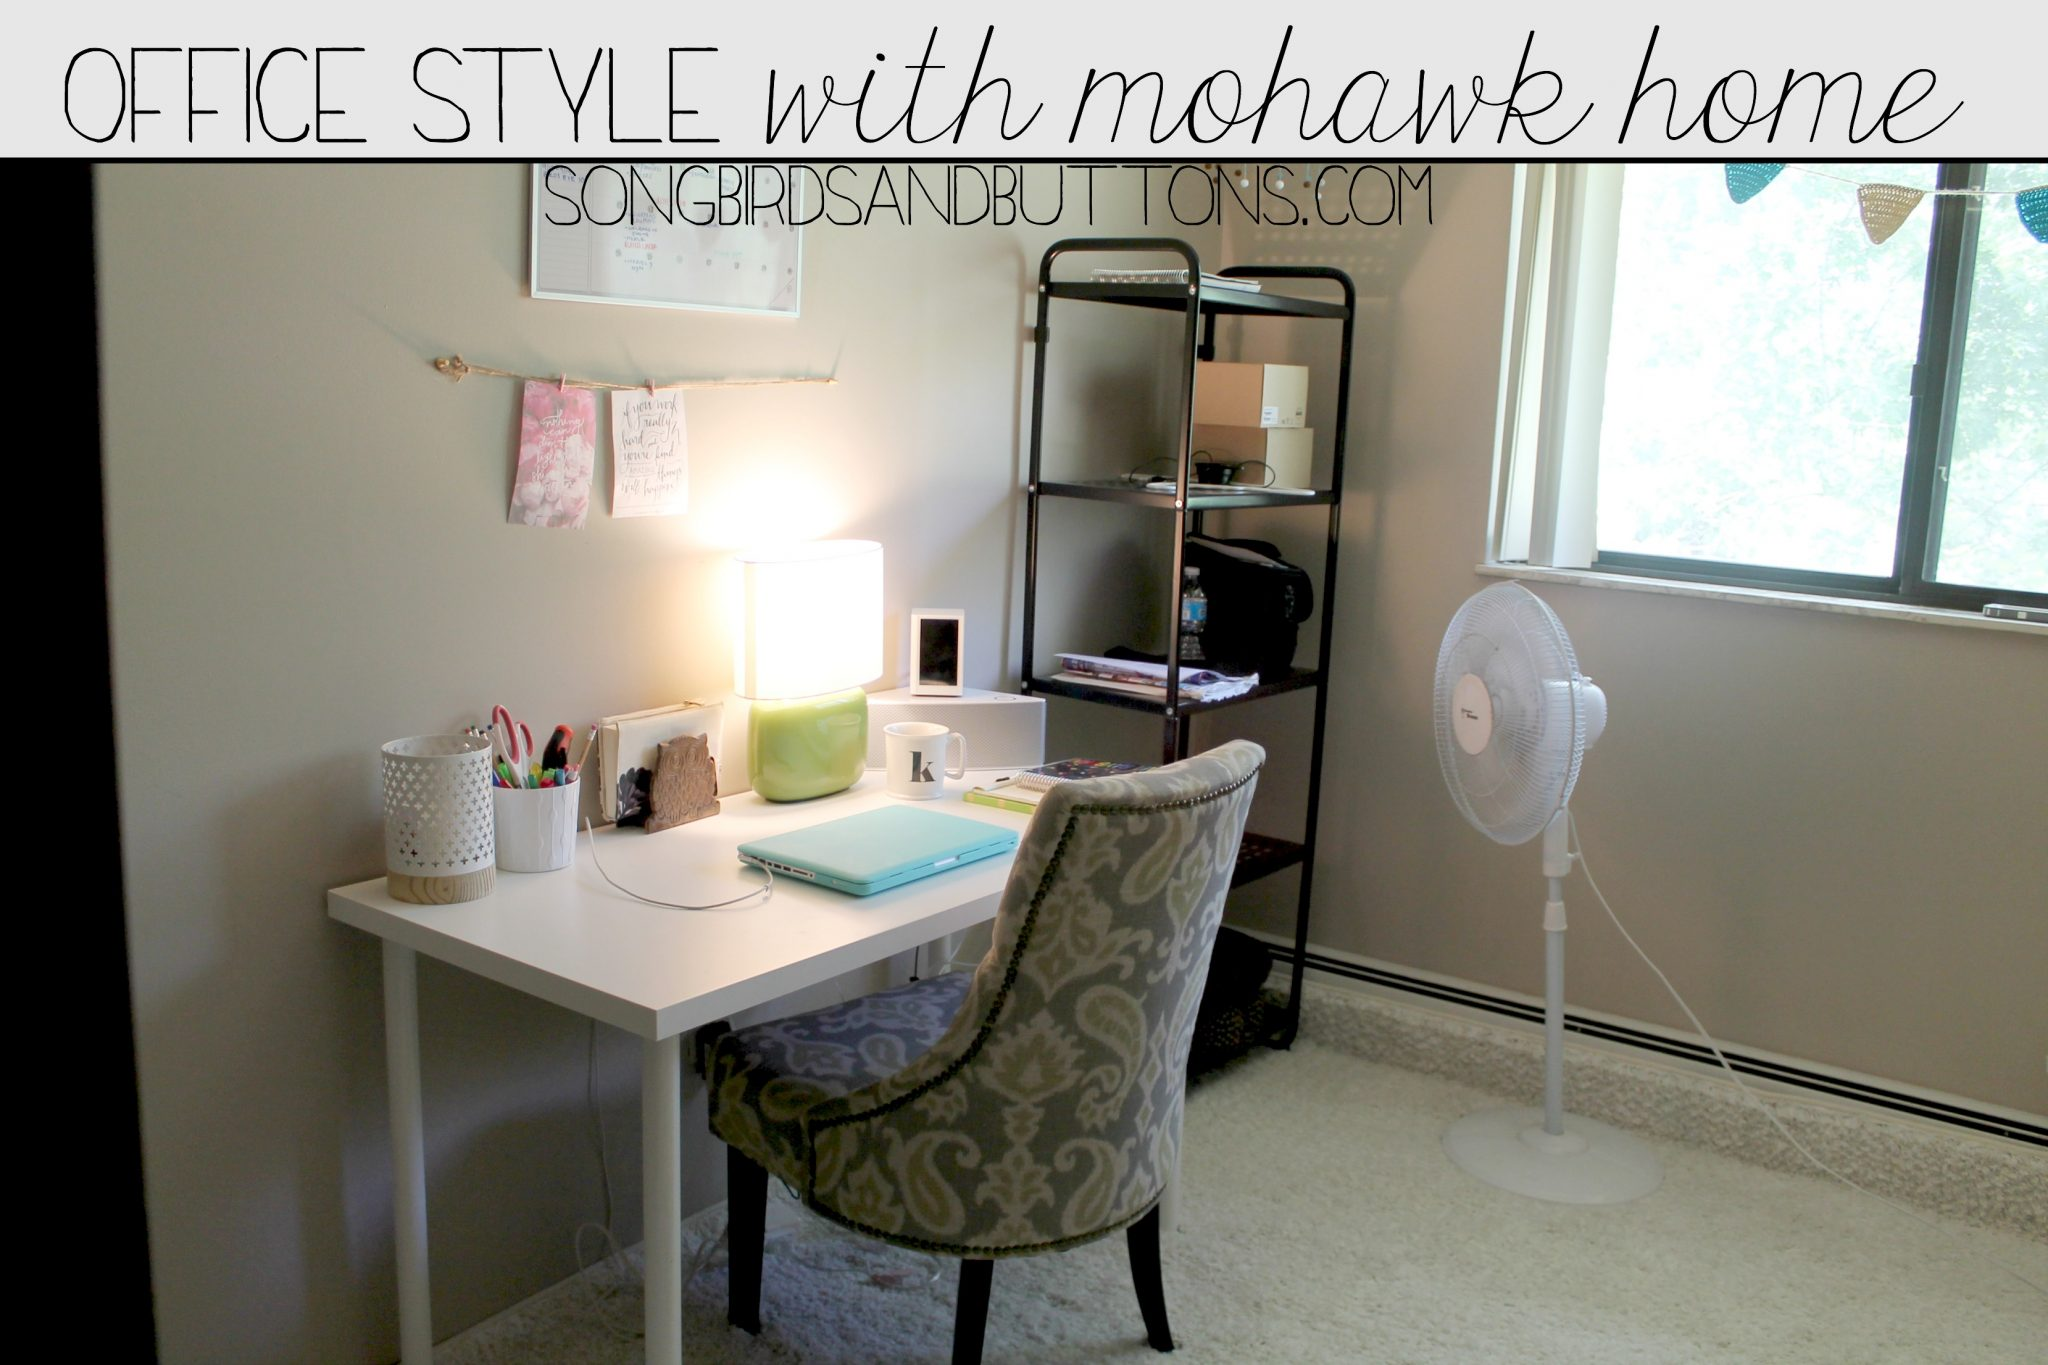 My Office Space & Mohawk Home Giveaway!